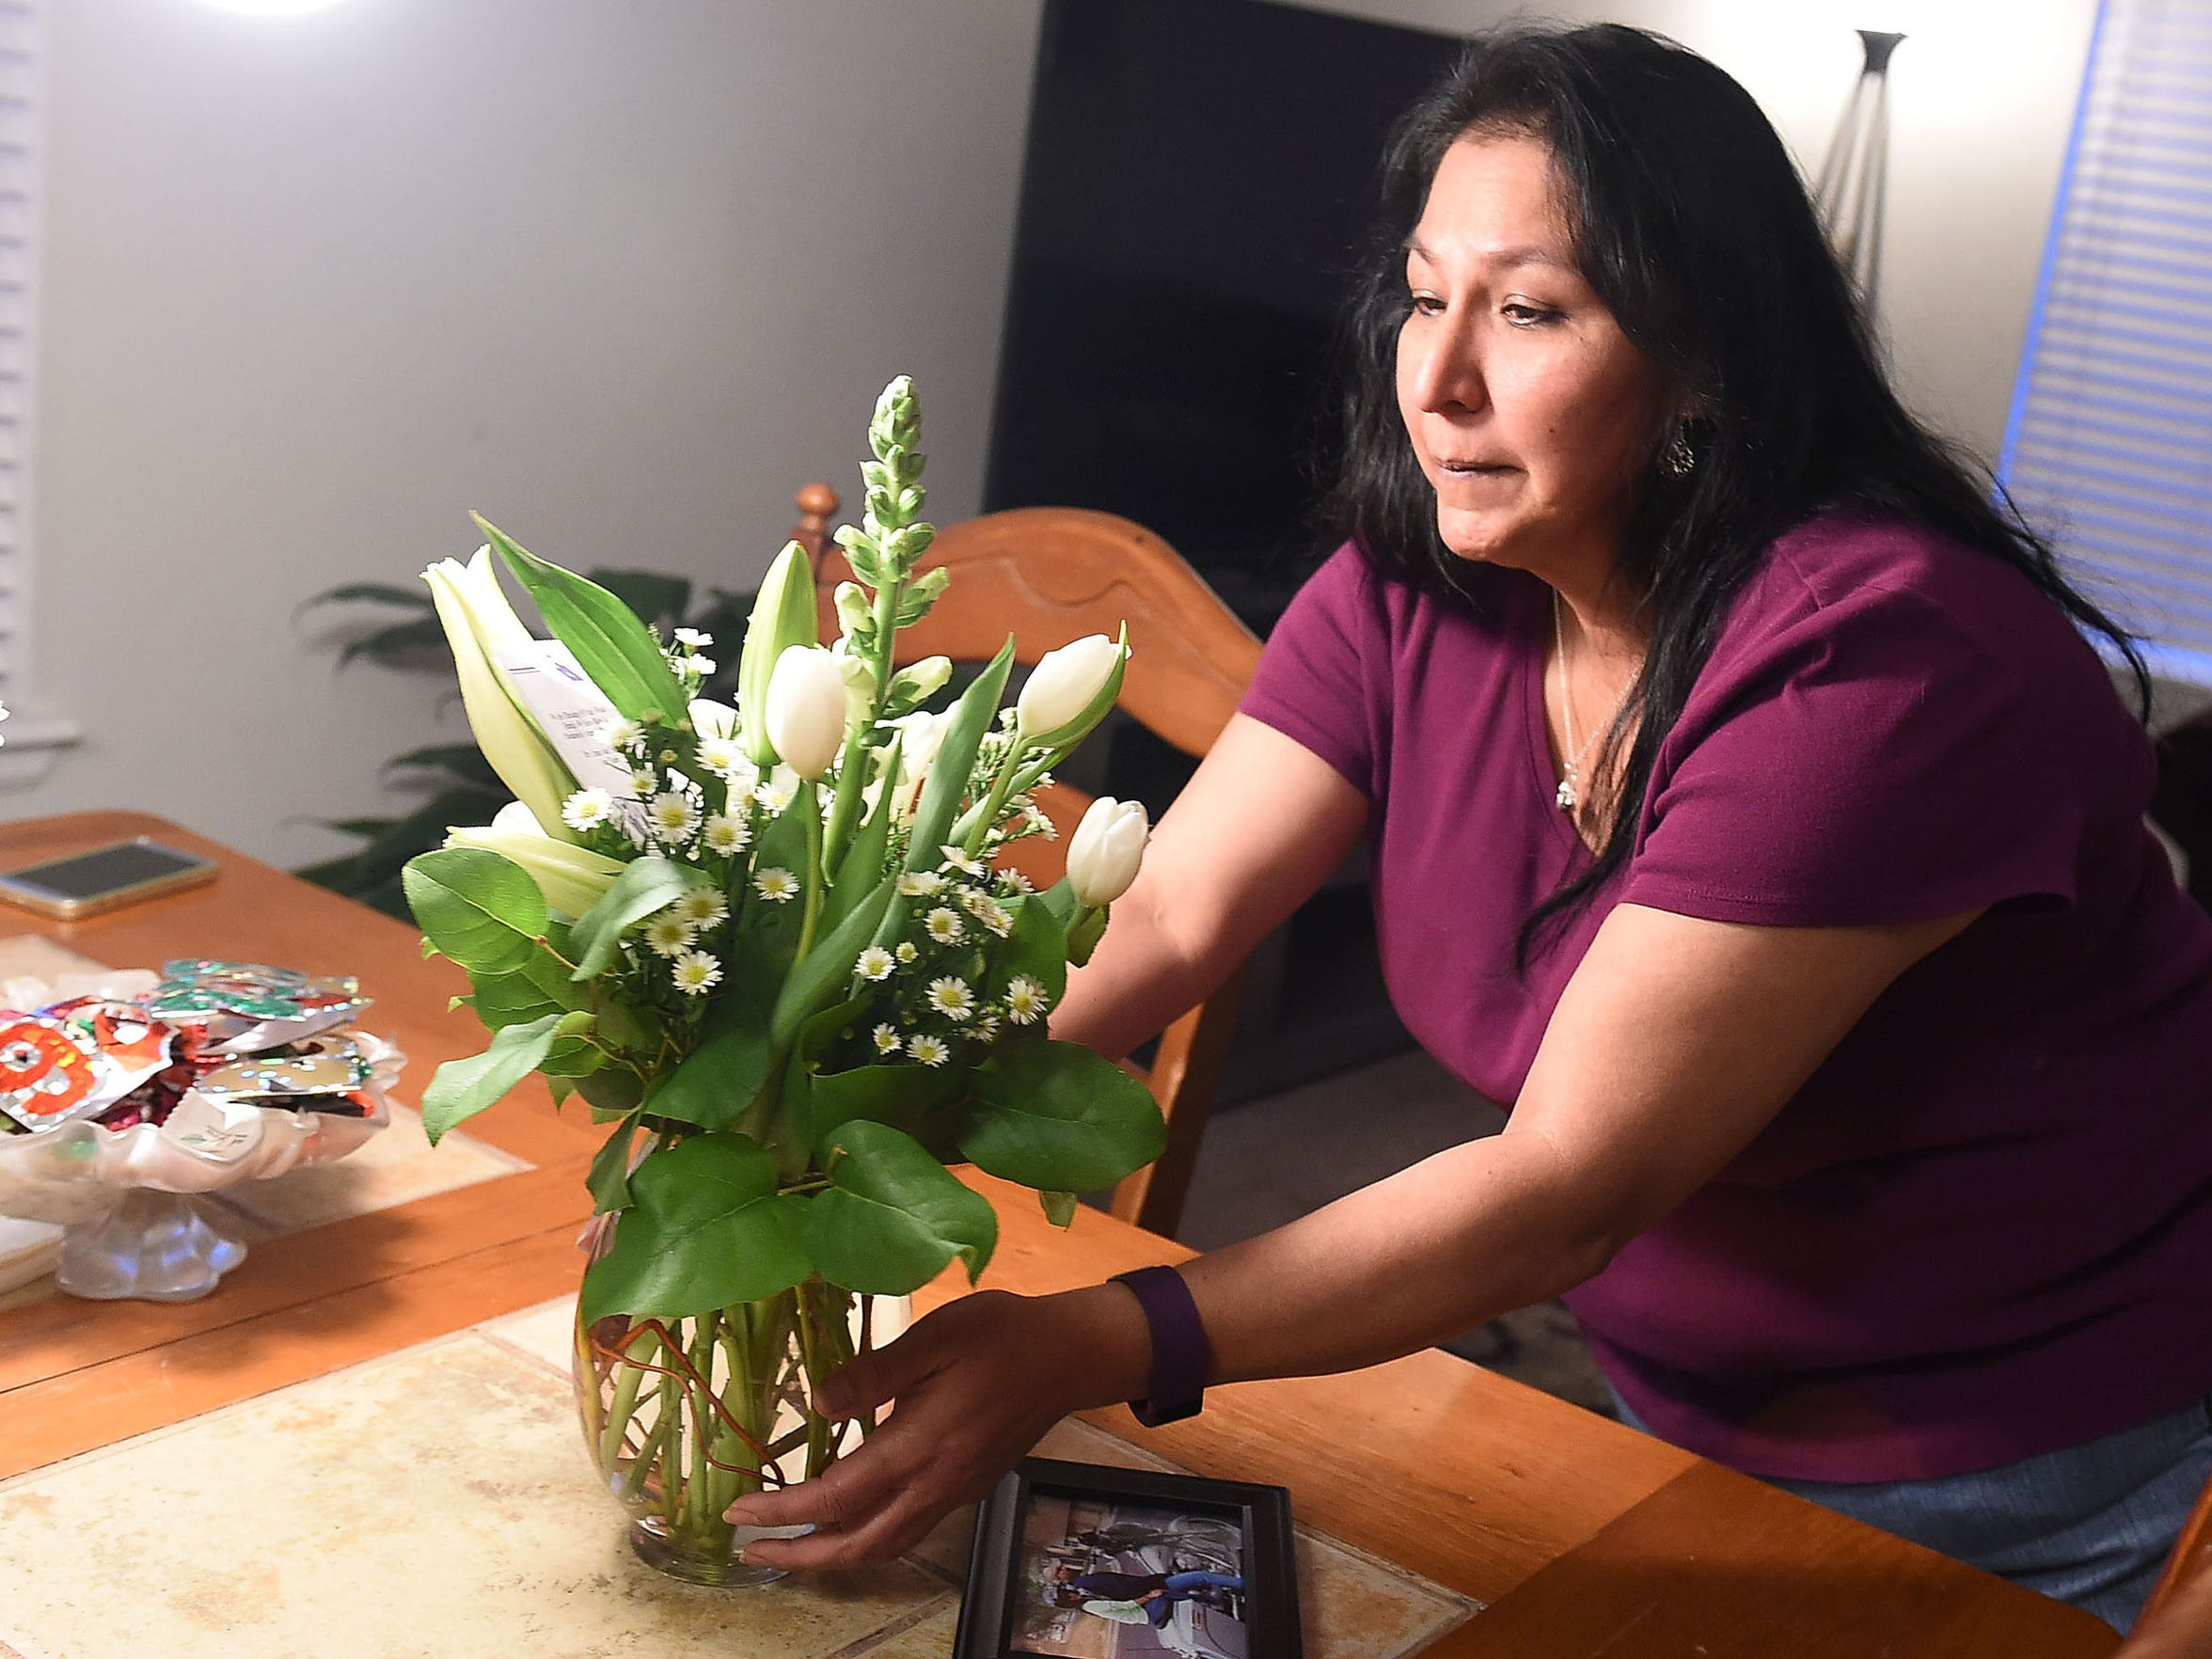 Gigi Godinez places a flower arrangement from her daughter Ariana Cordova's orthodontist's office on her kitchen table on January 6, 2016. The office had just found out Ariana's passing in November when they called with an appointment reminder.